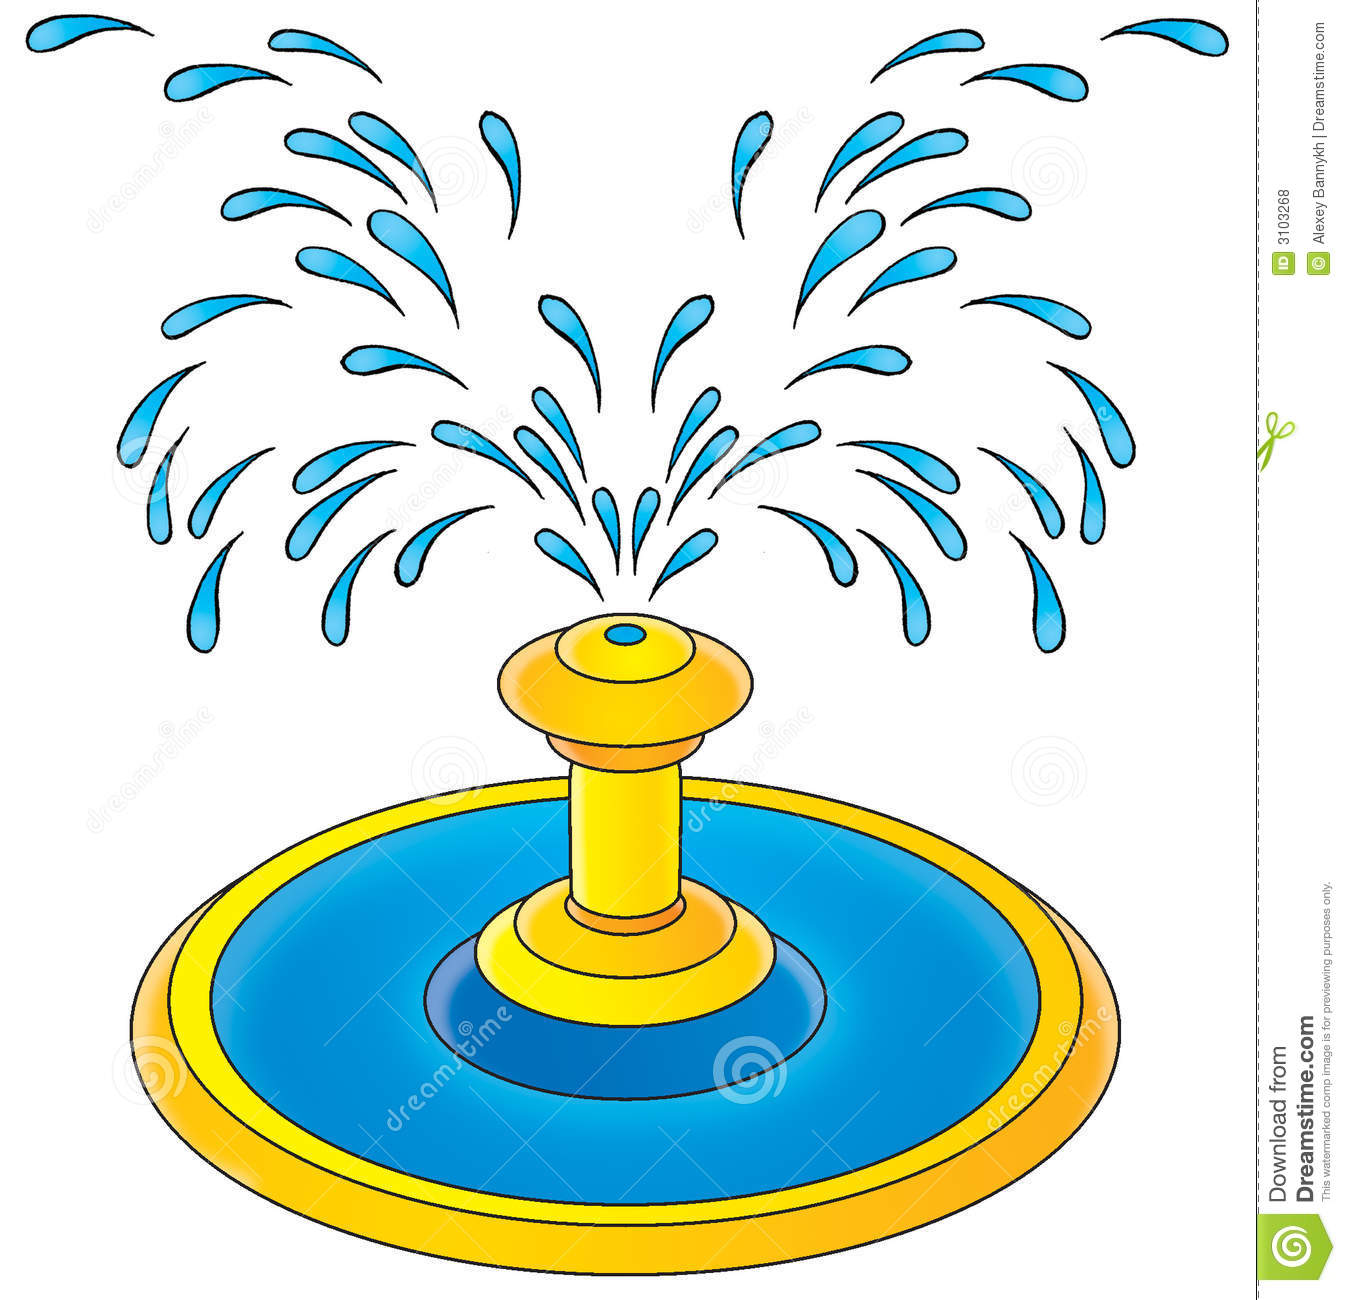 Free fountain clipart 4 » Clipart Station.